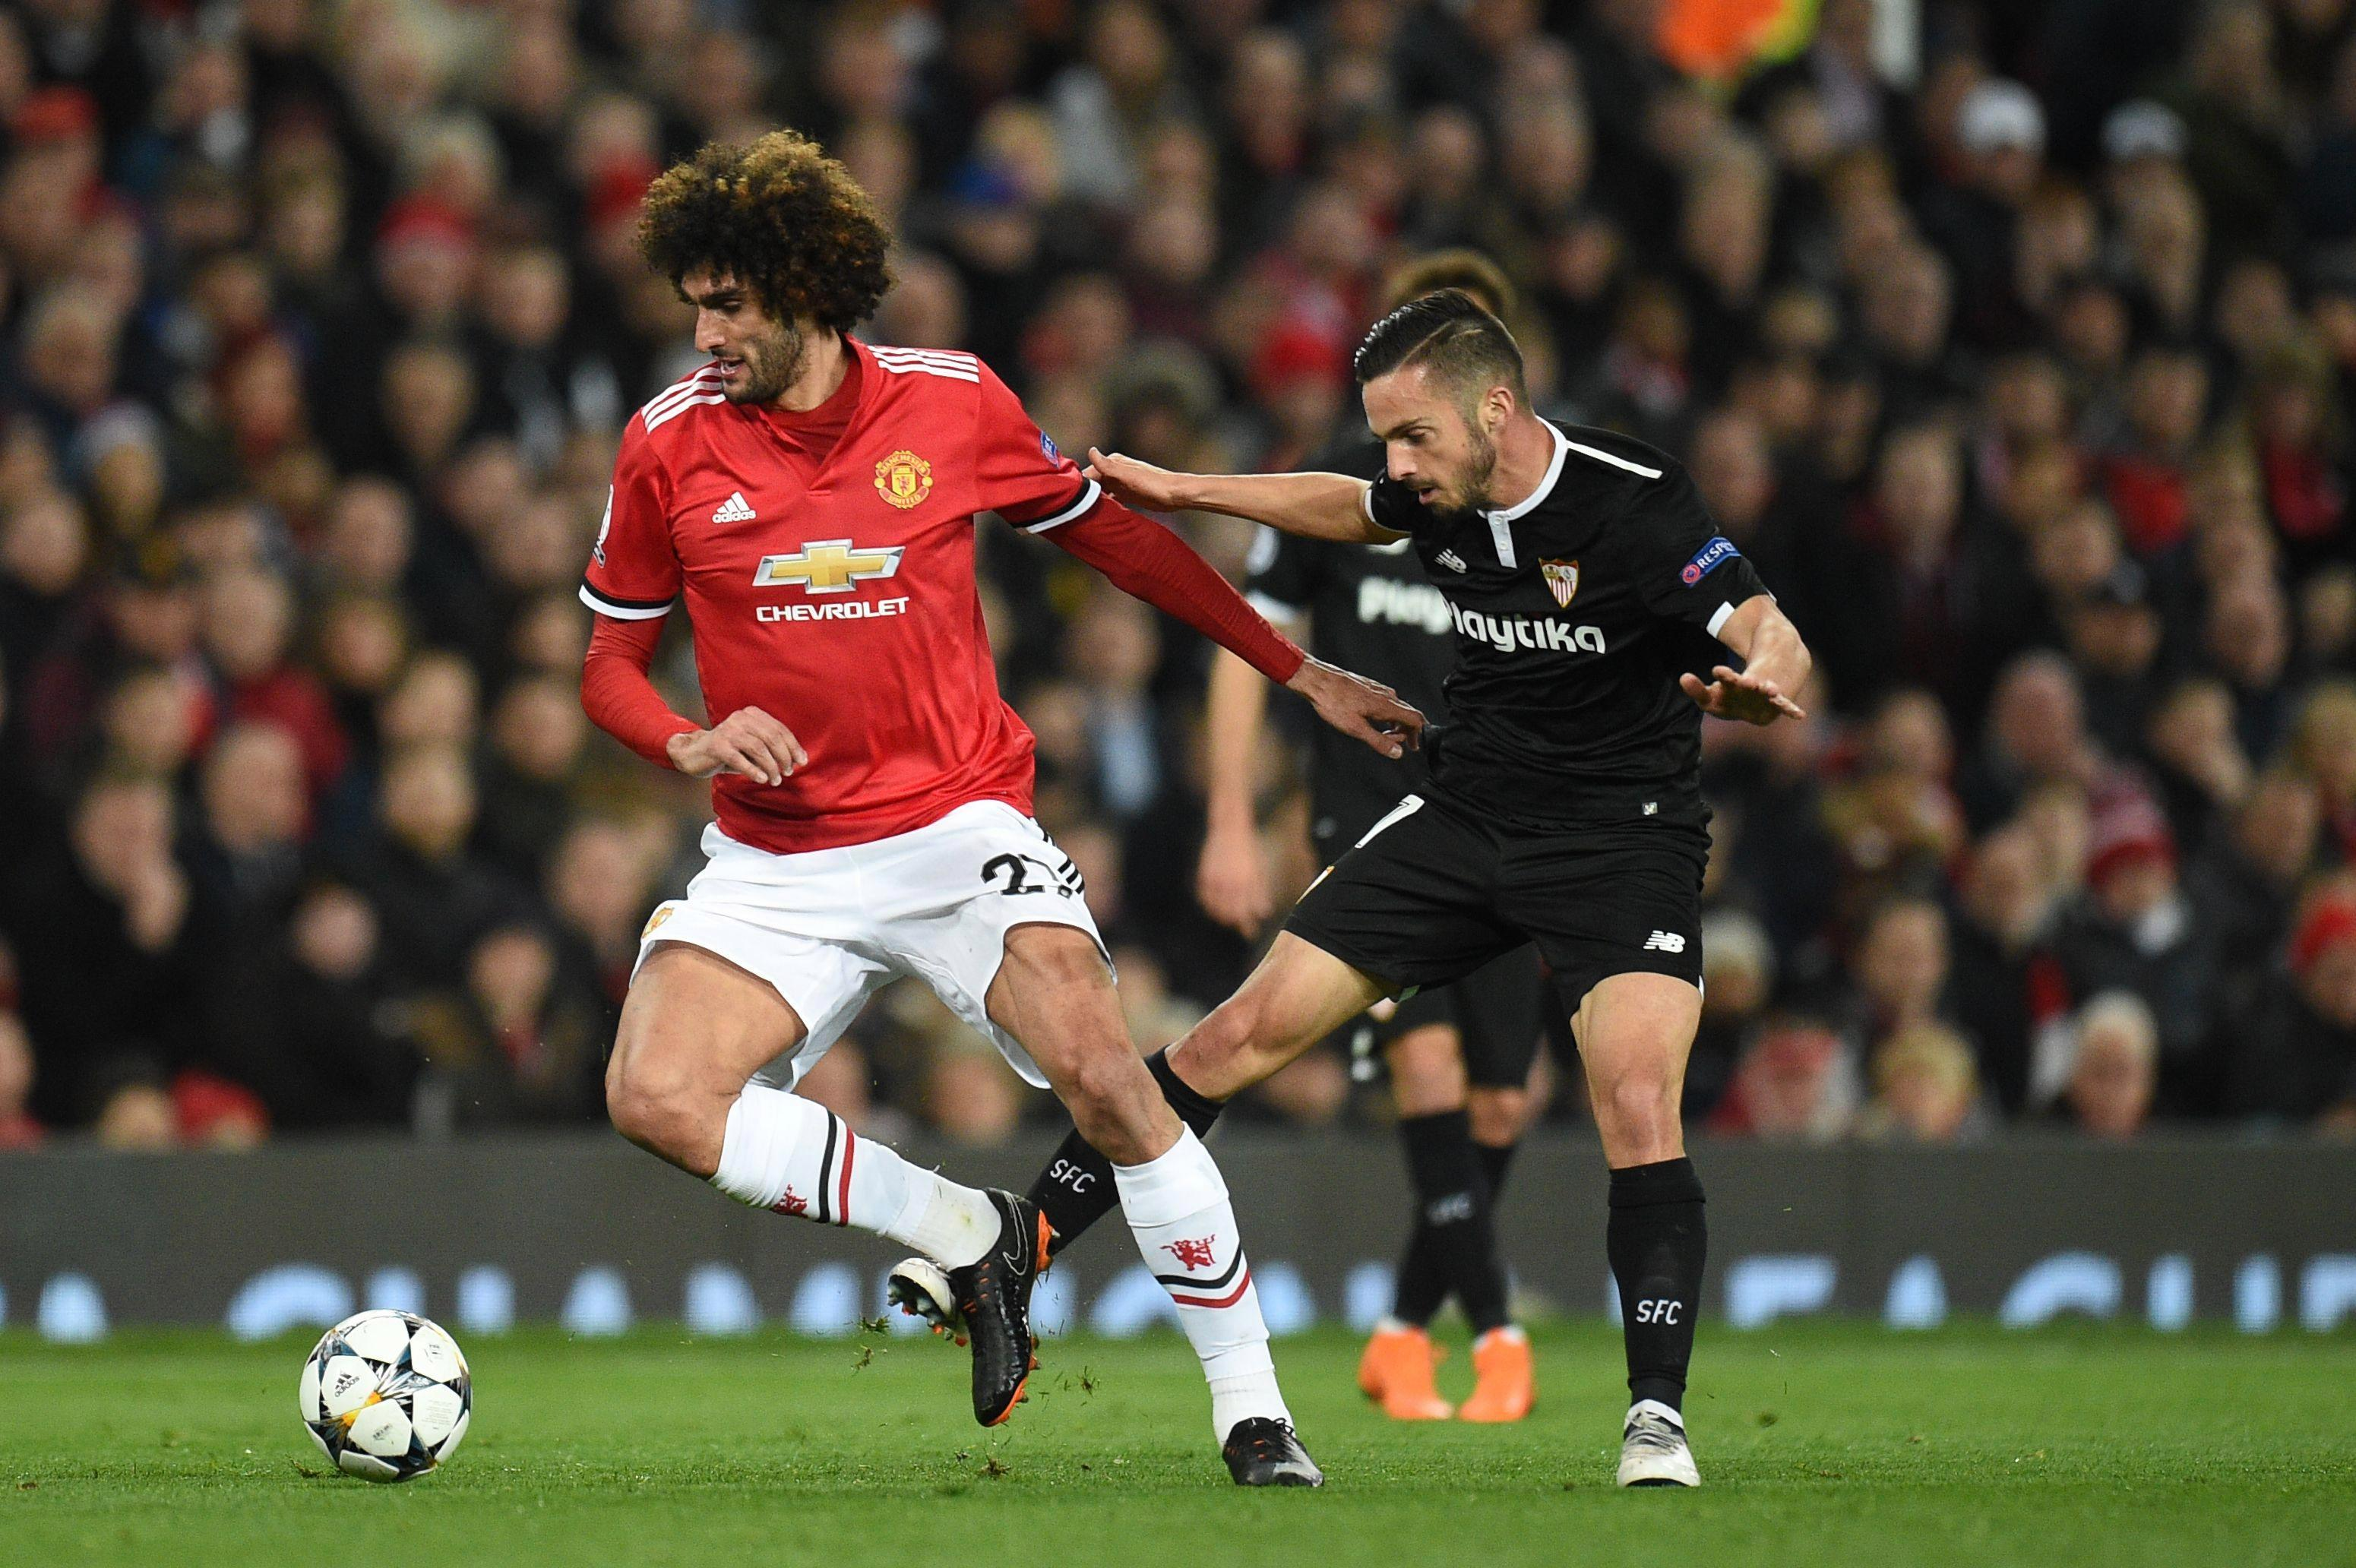 Marouane Fellaini is not a Manchester United player and Jose Mourinho's decision to start him against Sevilla backfired